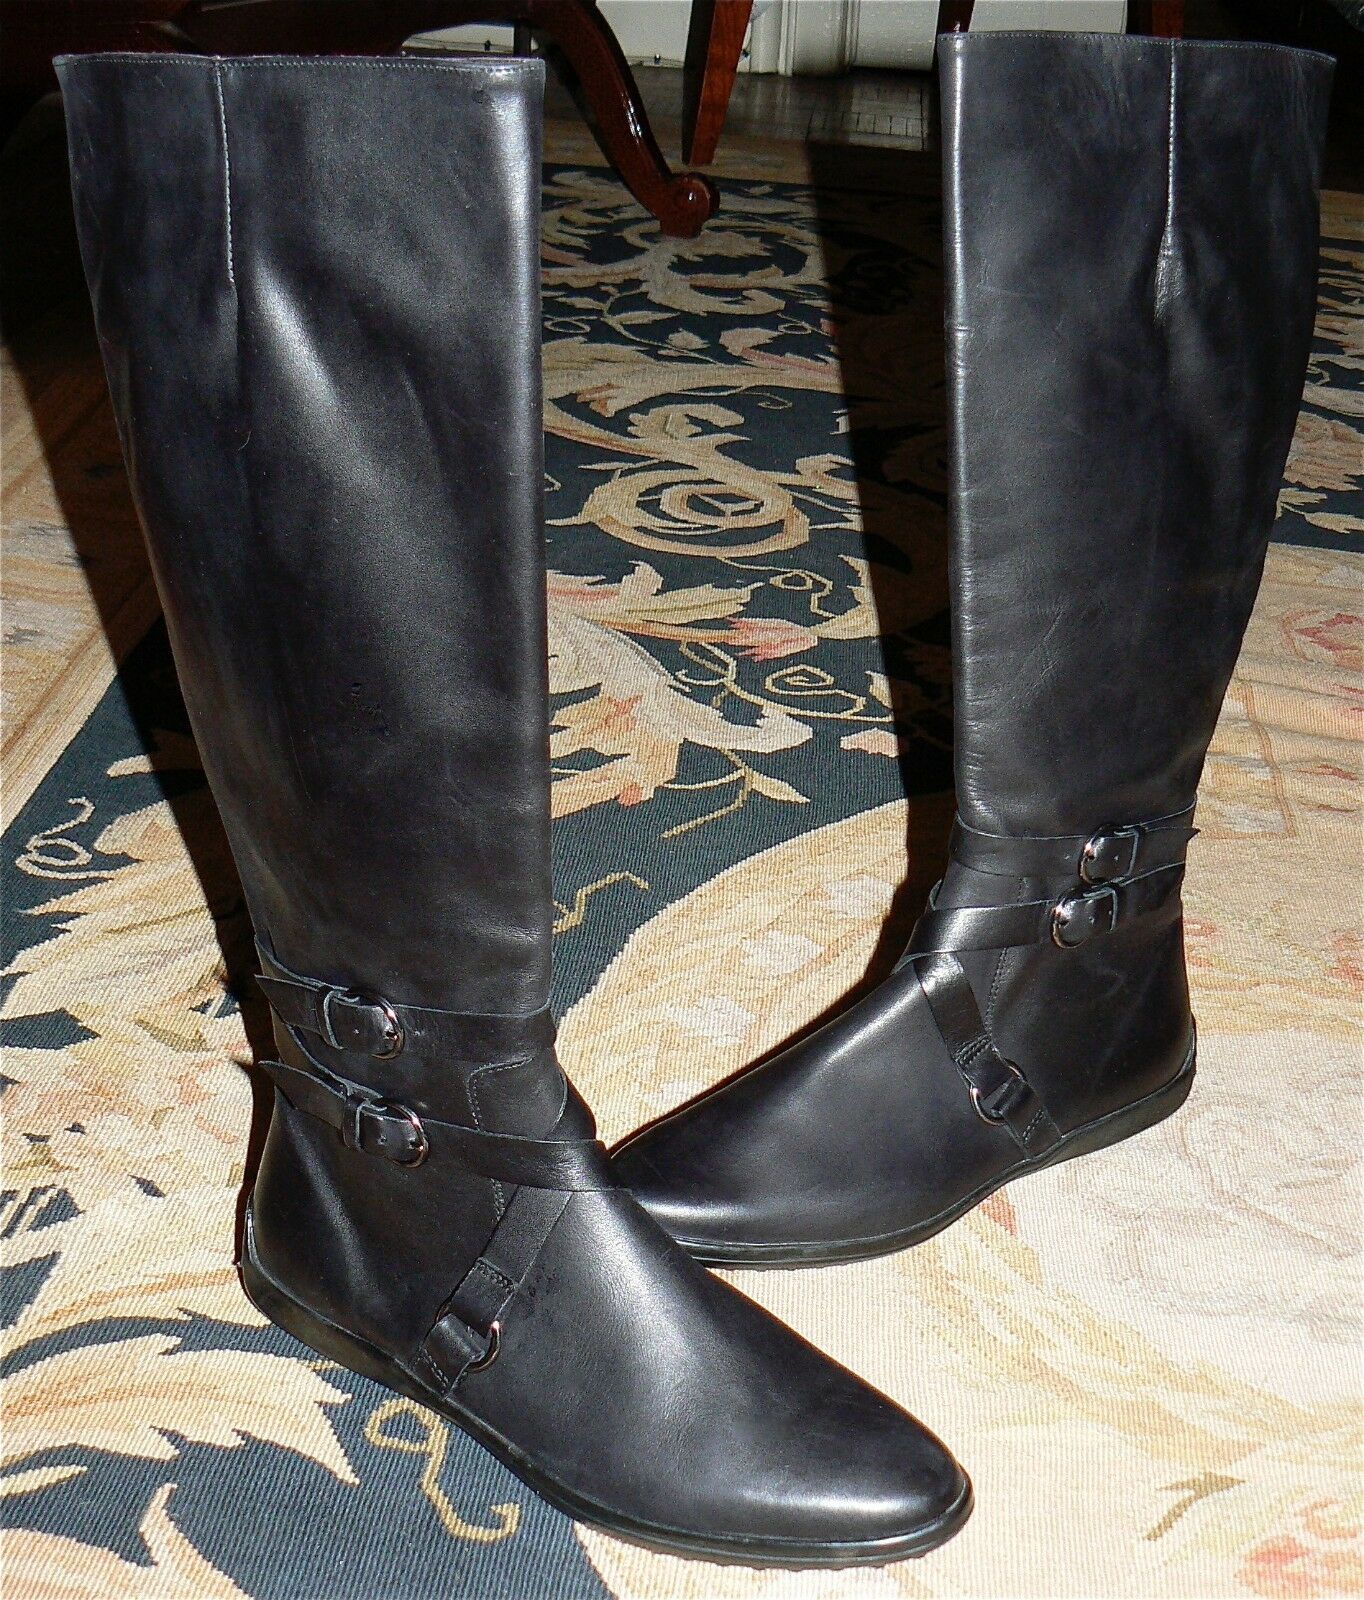 SAKS FIFTH AVE BLACK LEATHER EQUESTRIAN TALL RIDING BOOT MCQUEEN PRDA 8.5 M NEW